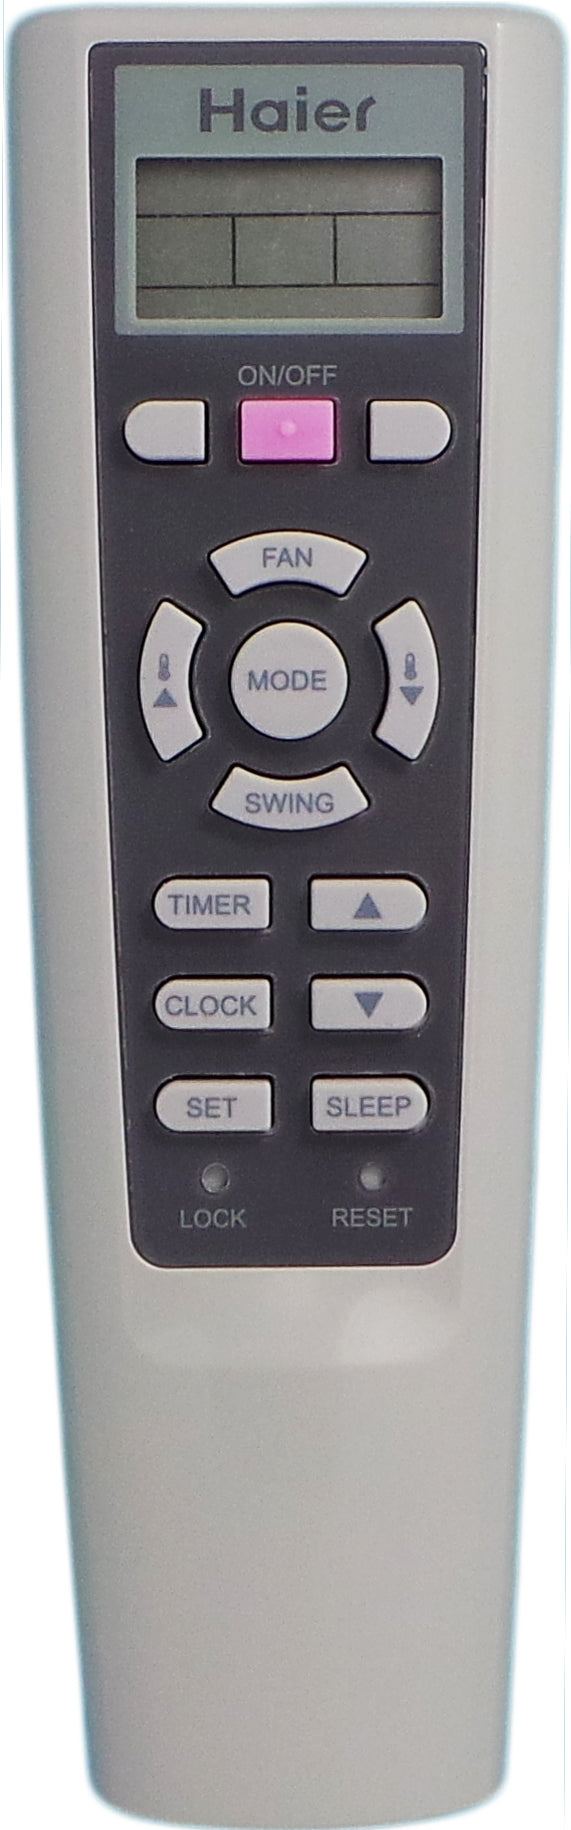 HAIER AIR CONDITIONER REMOTE CONTROL YL-W01 - Remote Control Warehouse